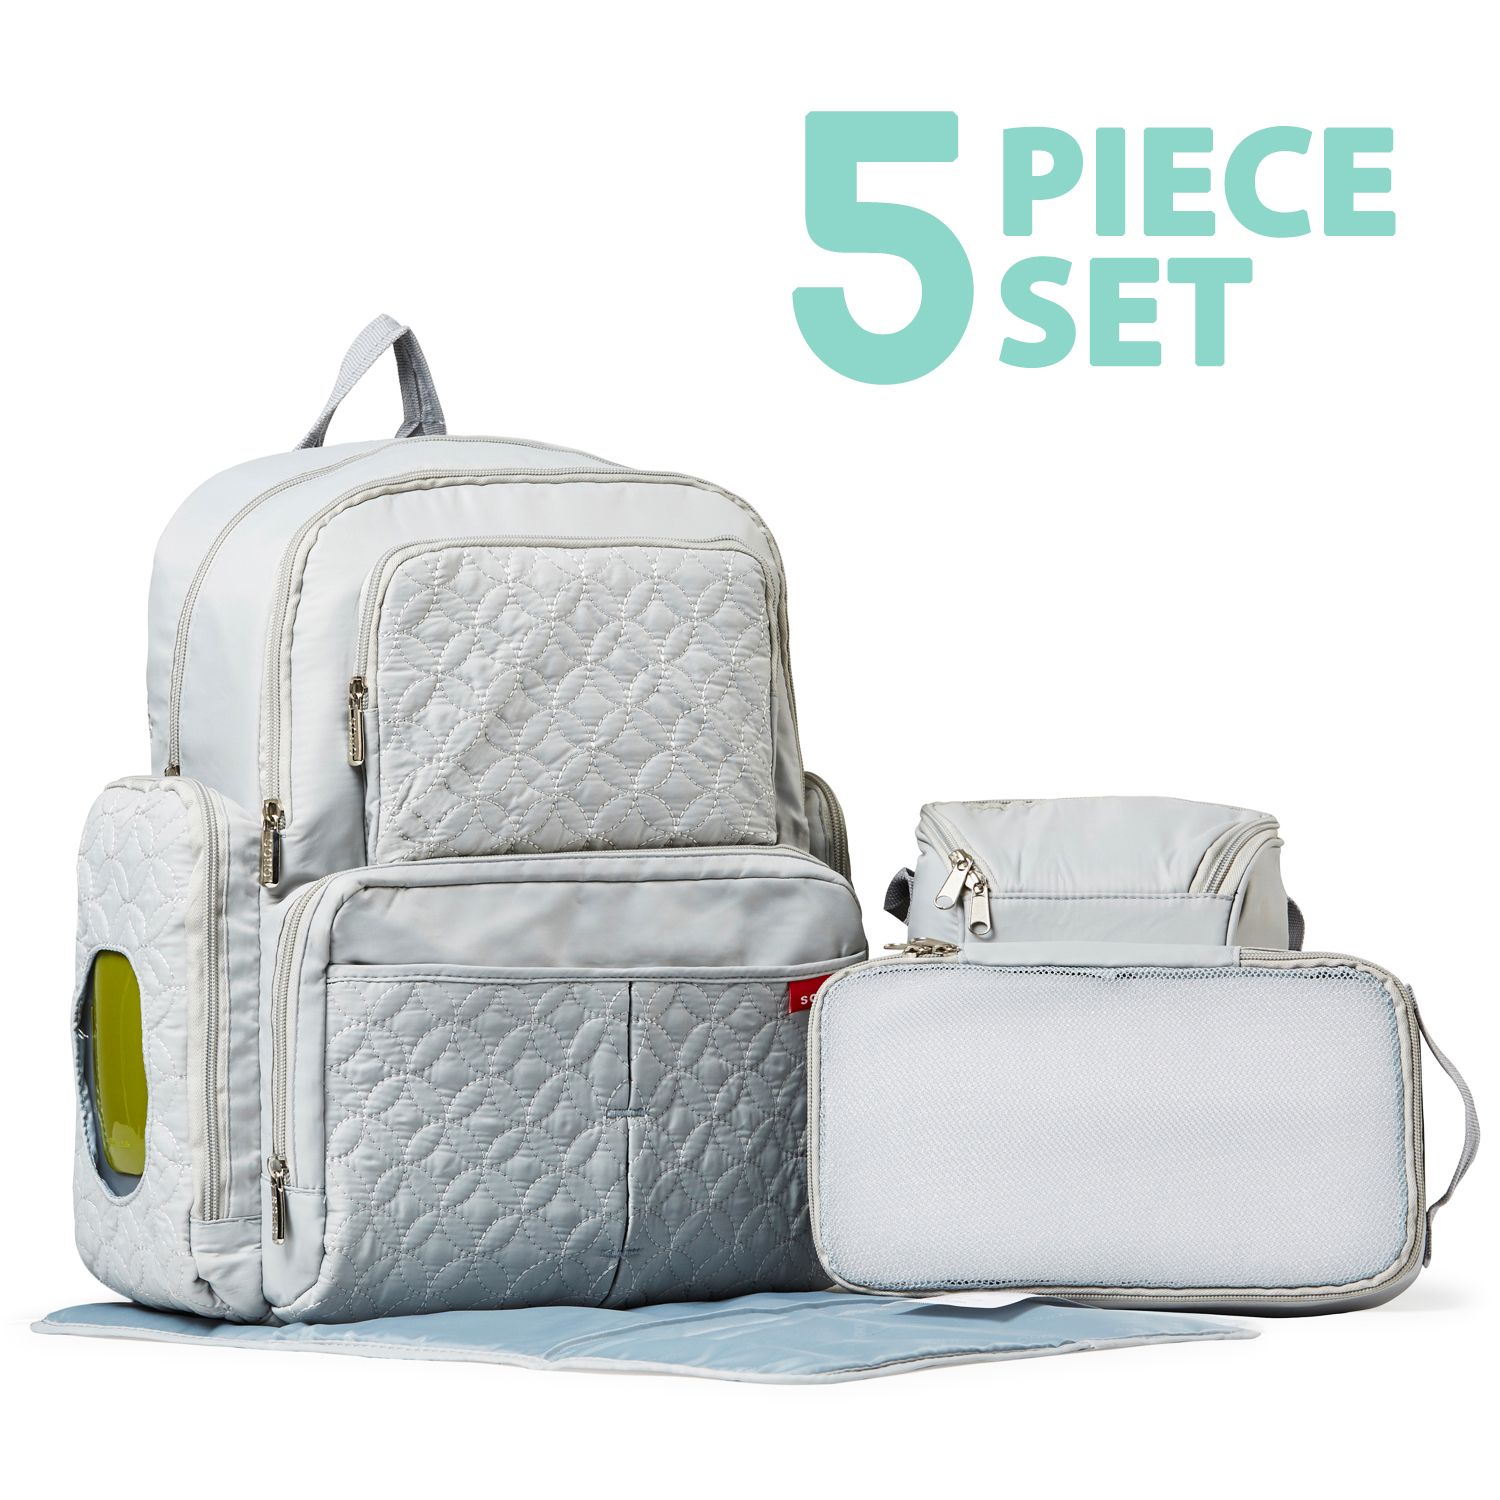 SoHo Collections, Diaper Bag Backpack with Stroller Straps, 5 Piece Complete Set, Manhattan (Silver Gray)